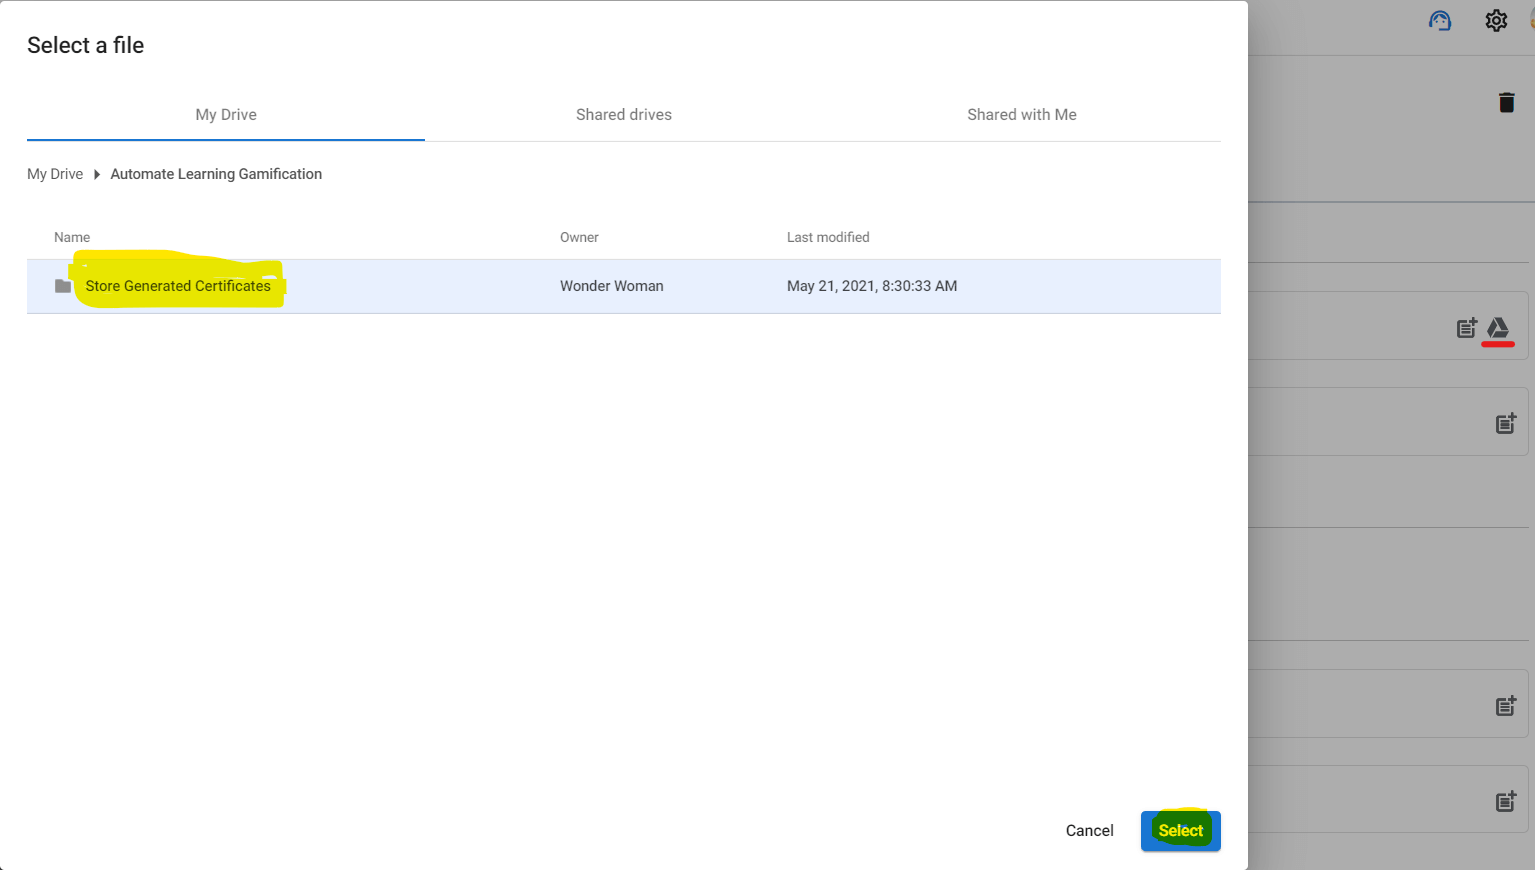 Ponting the Destination folder for the newly generated certificates.